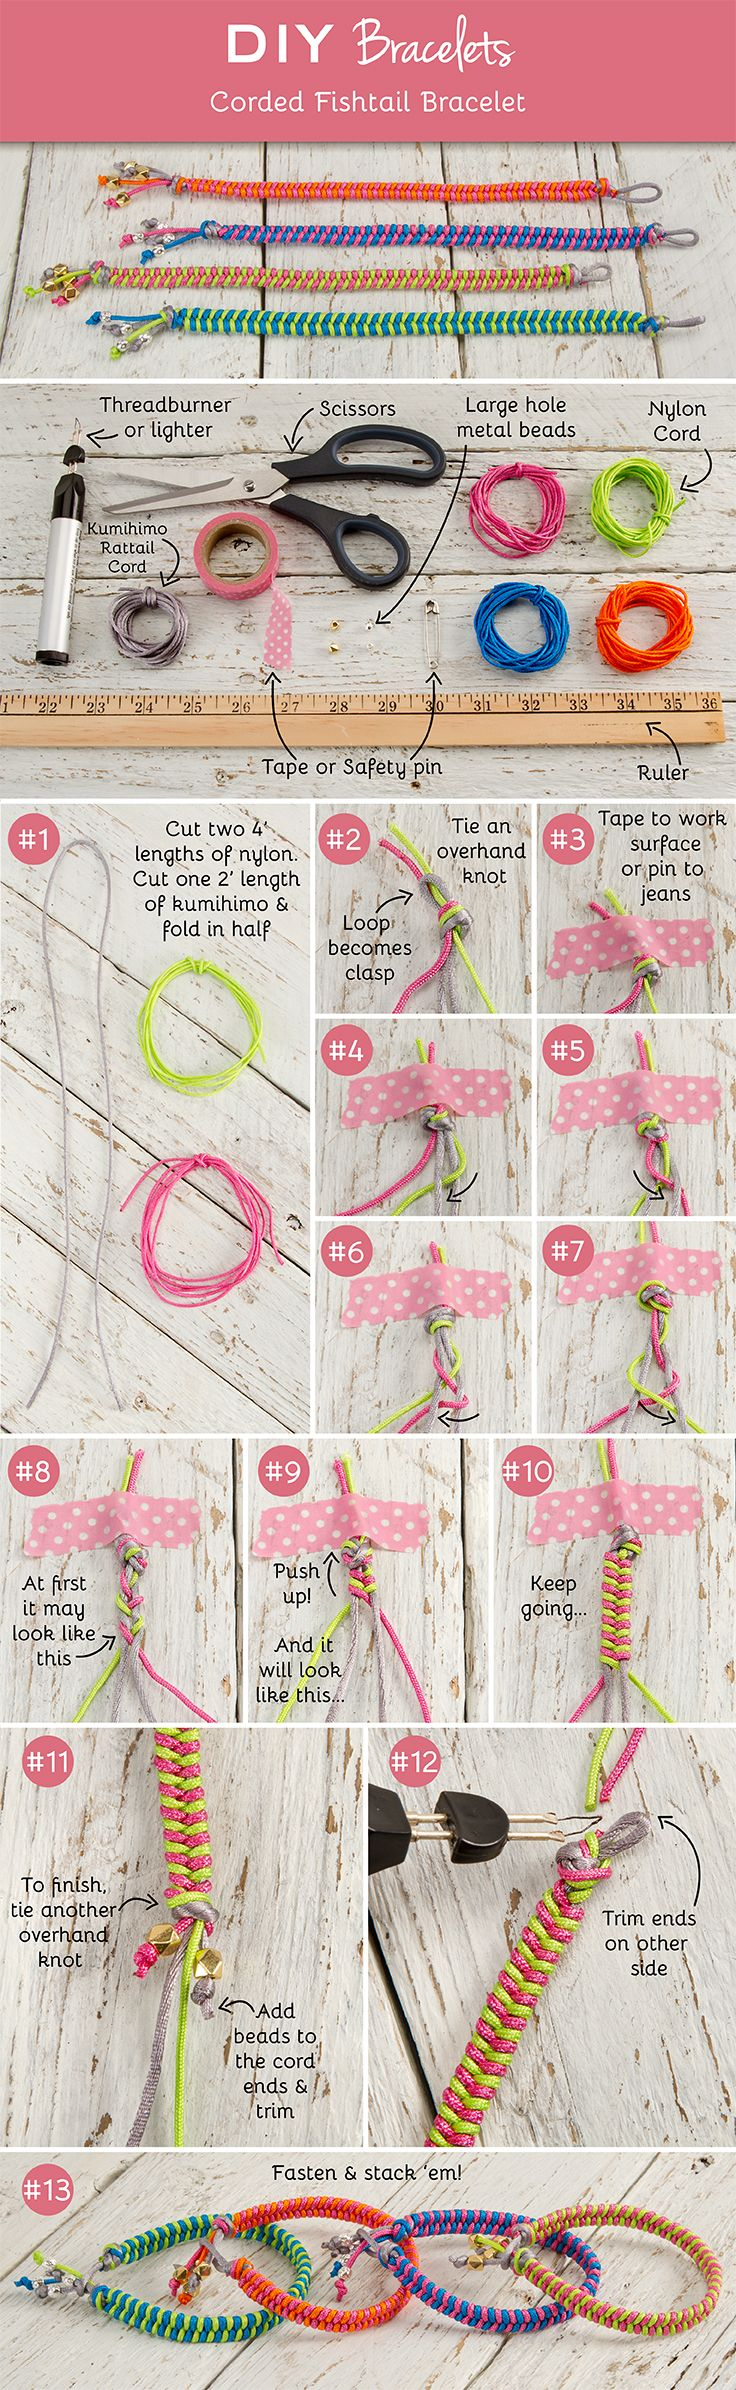 DIY Corded Fishtail Bracelets More